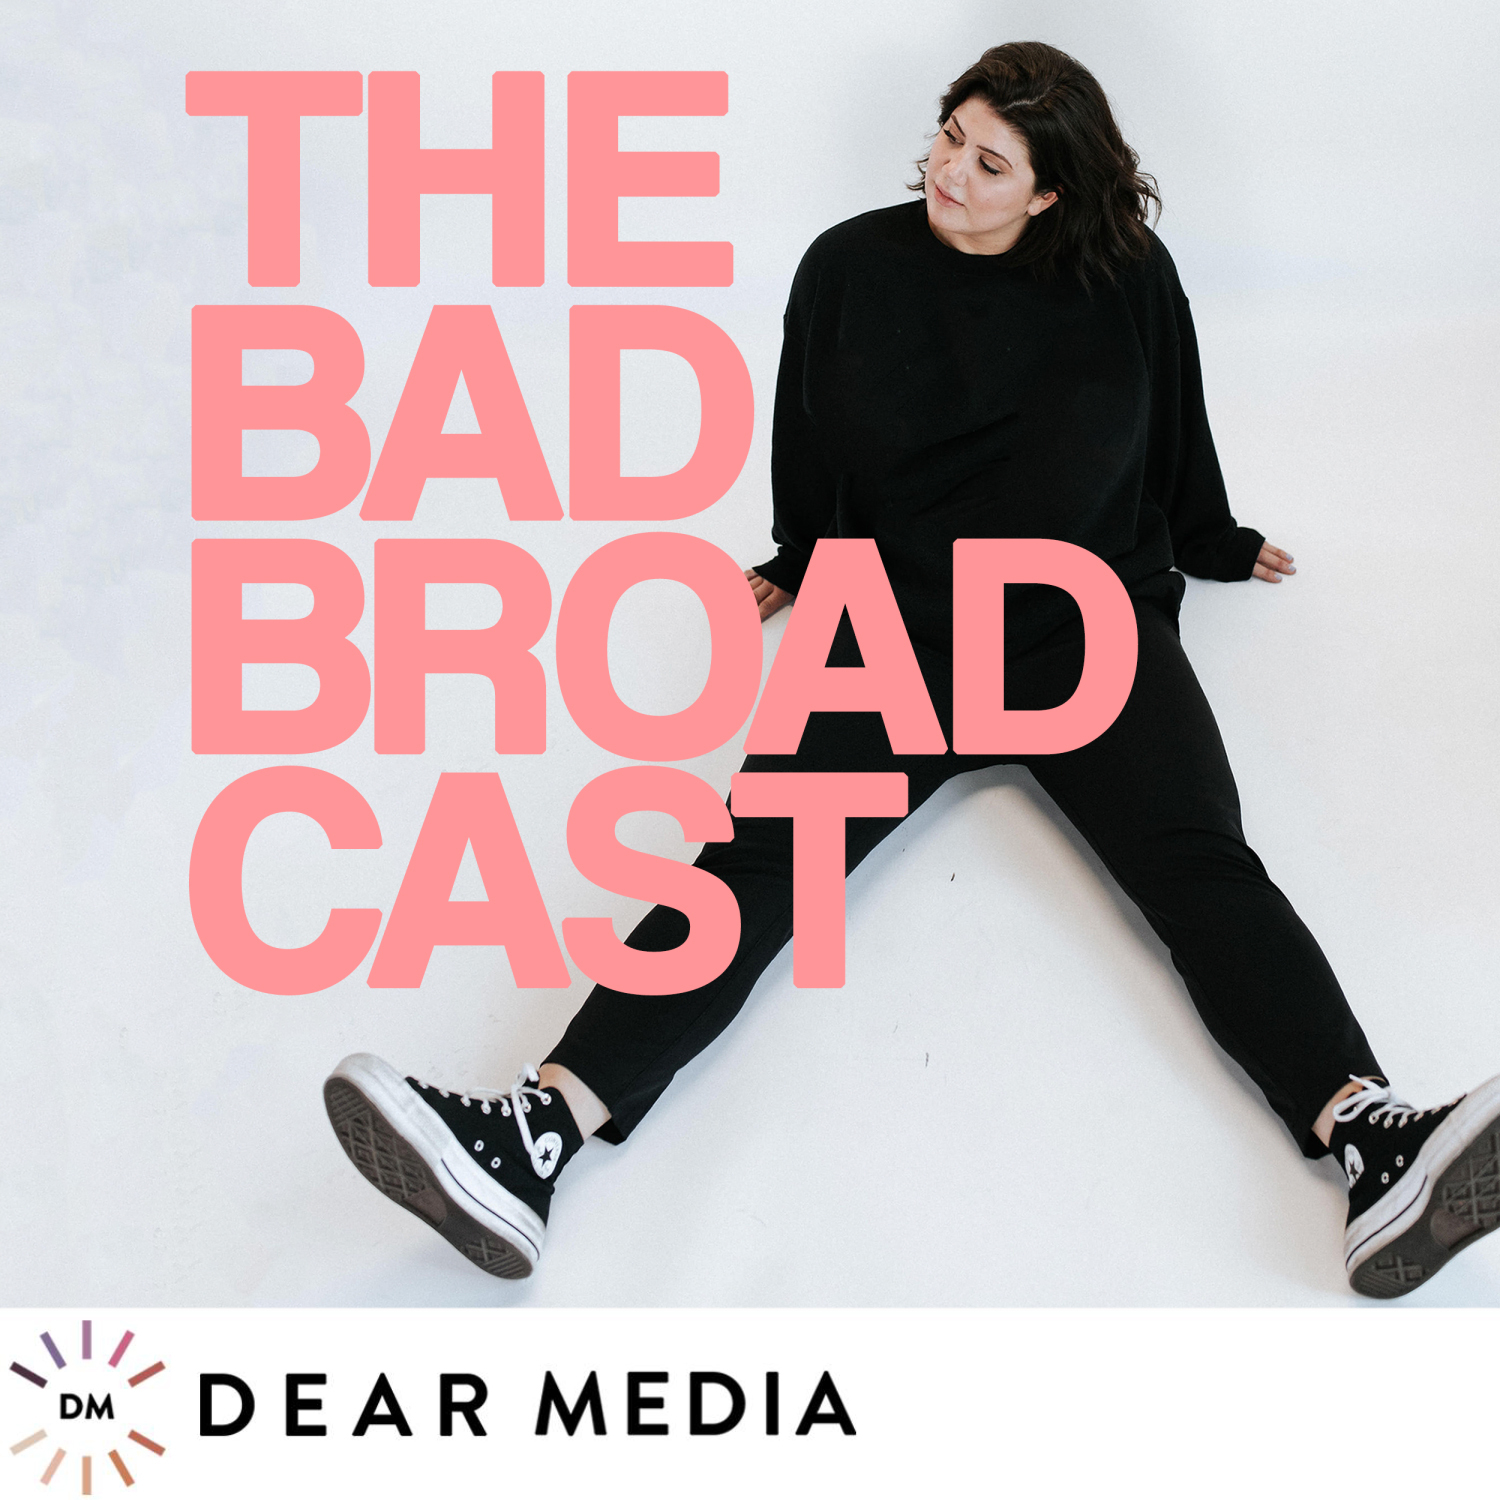 The Bad Broadcast show image